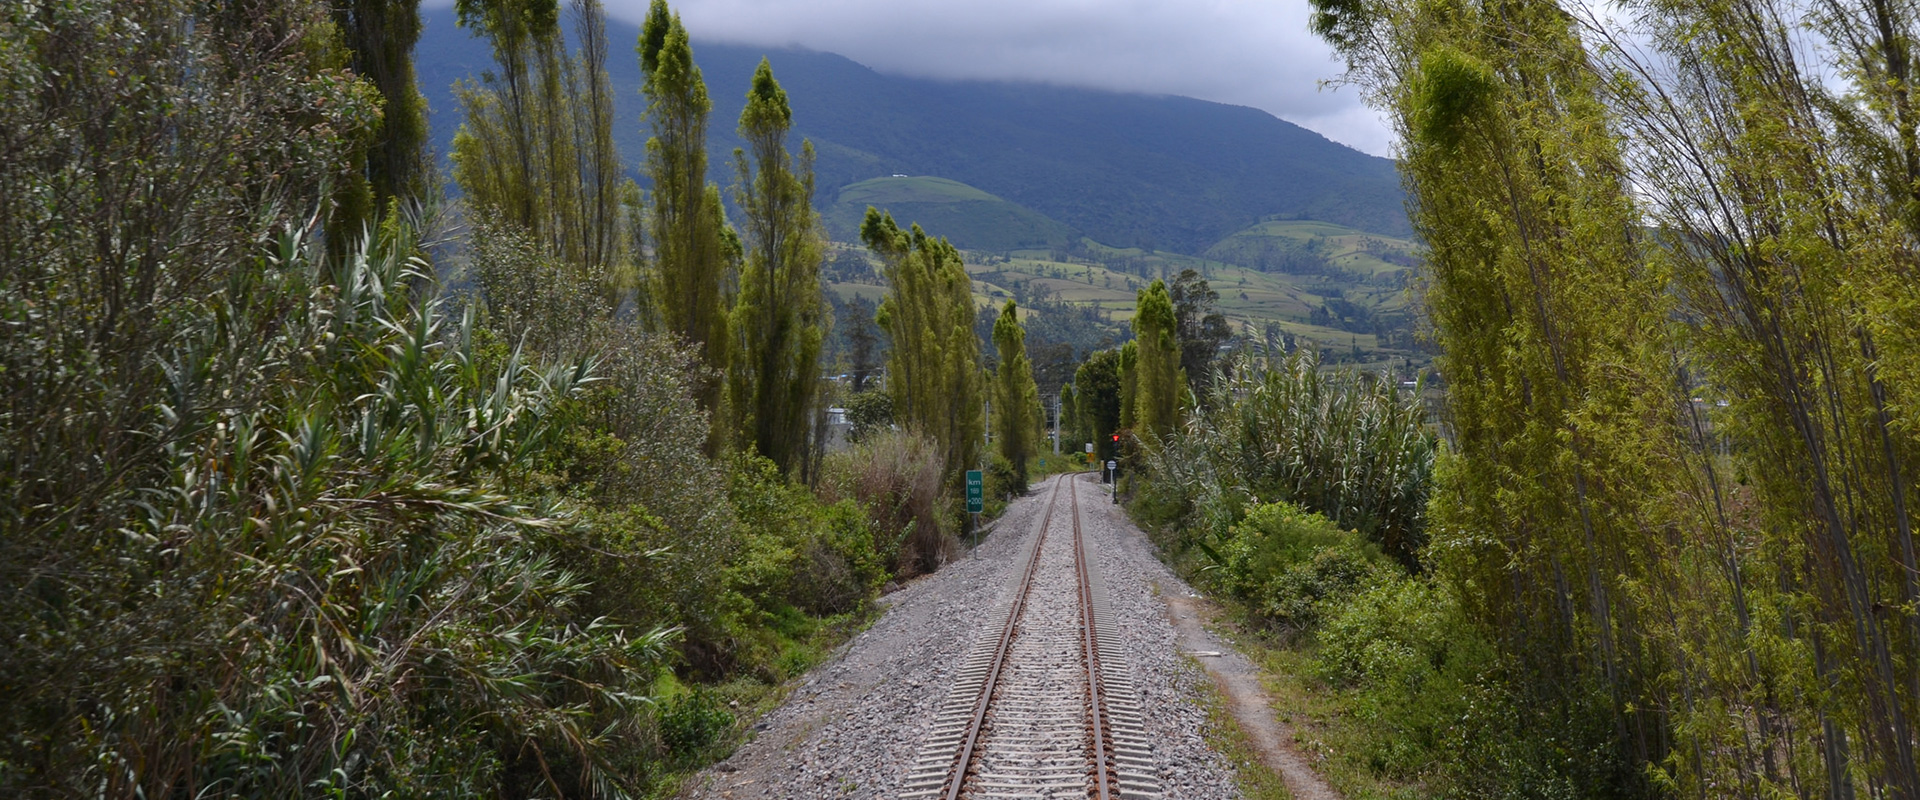 Ecuador Northern Train